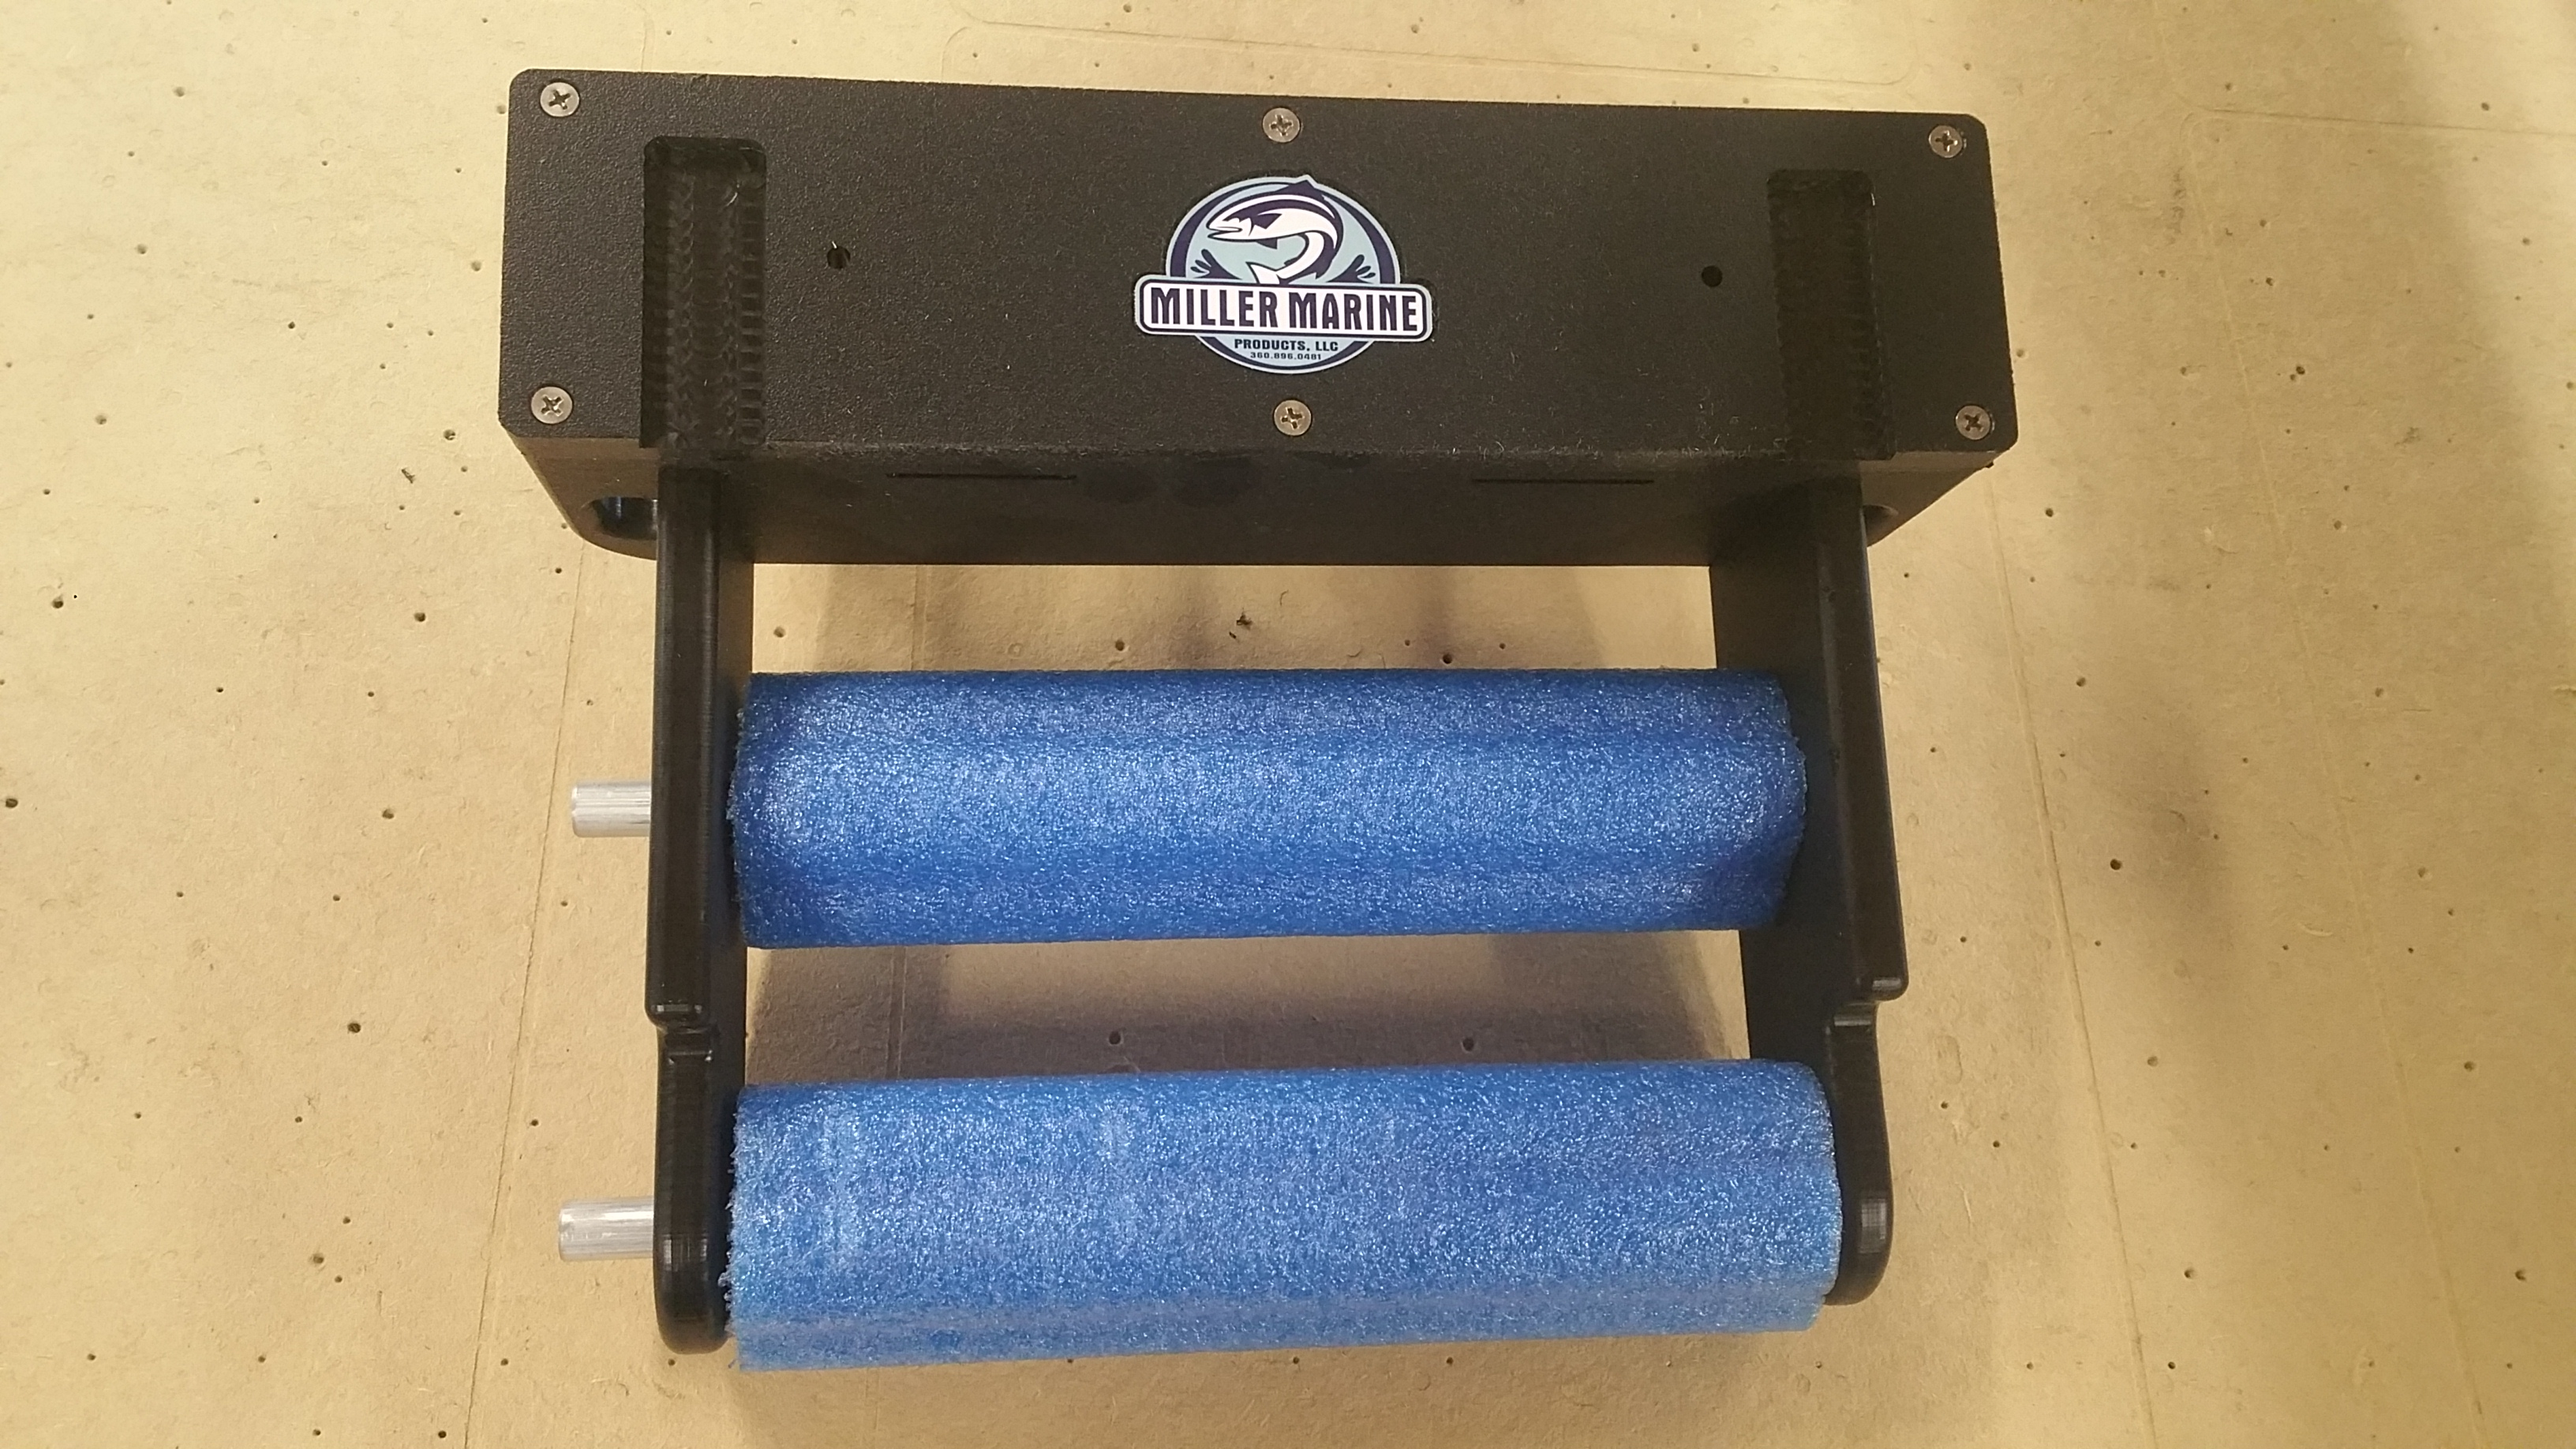 Case Blue Mmp : Leader scent holder double: miller marine products llc.